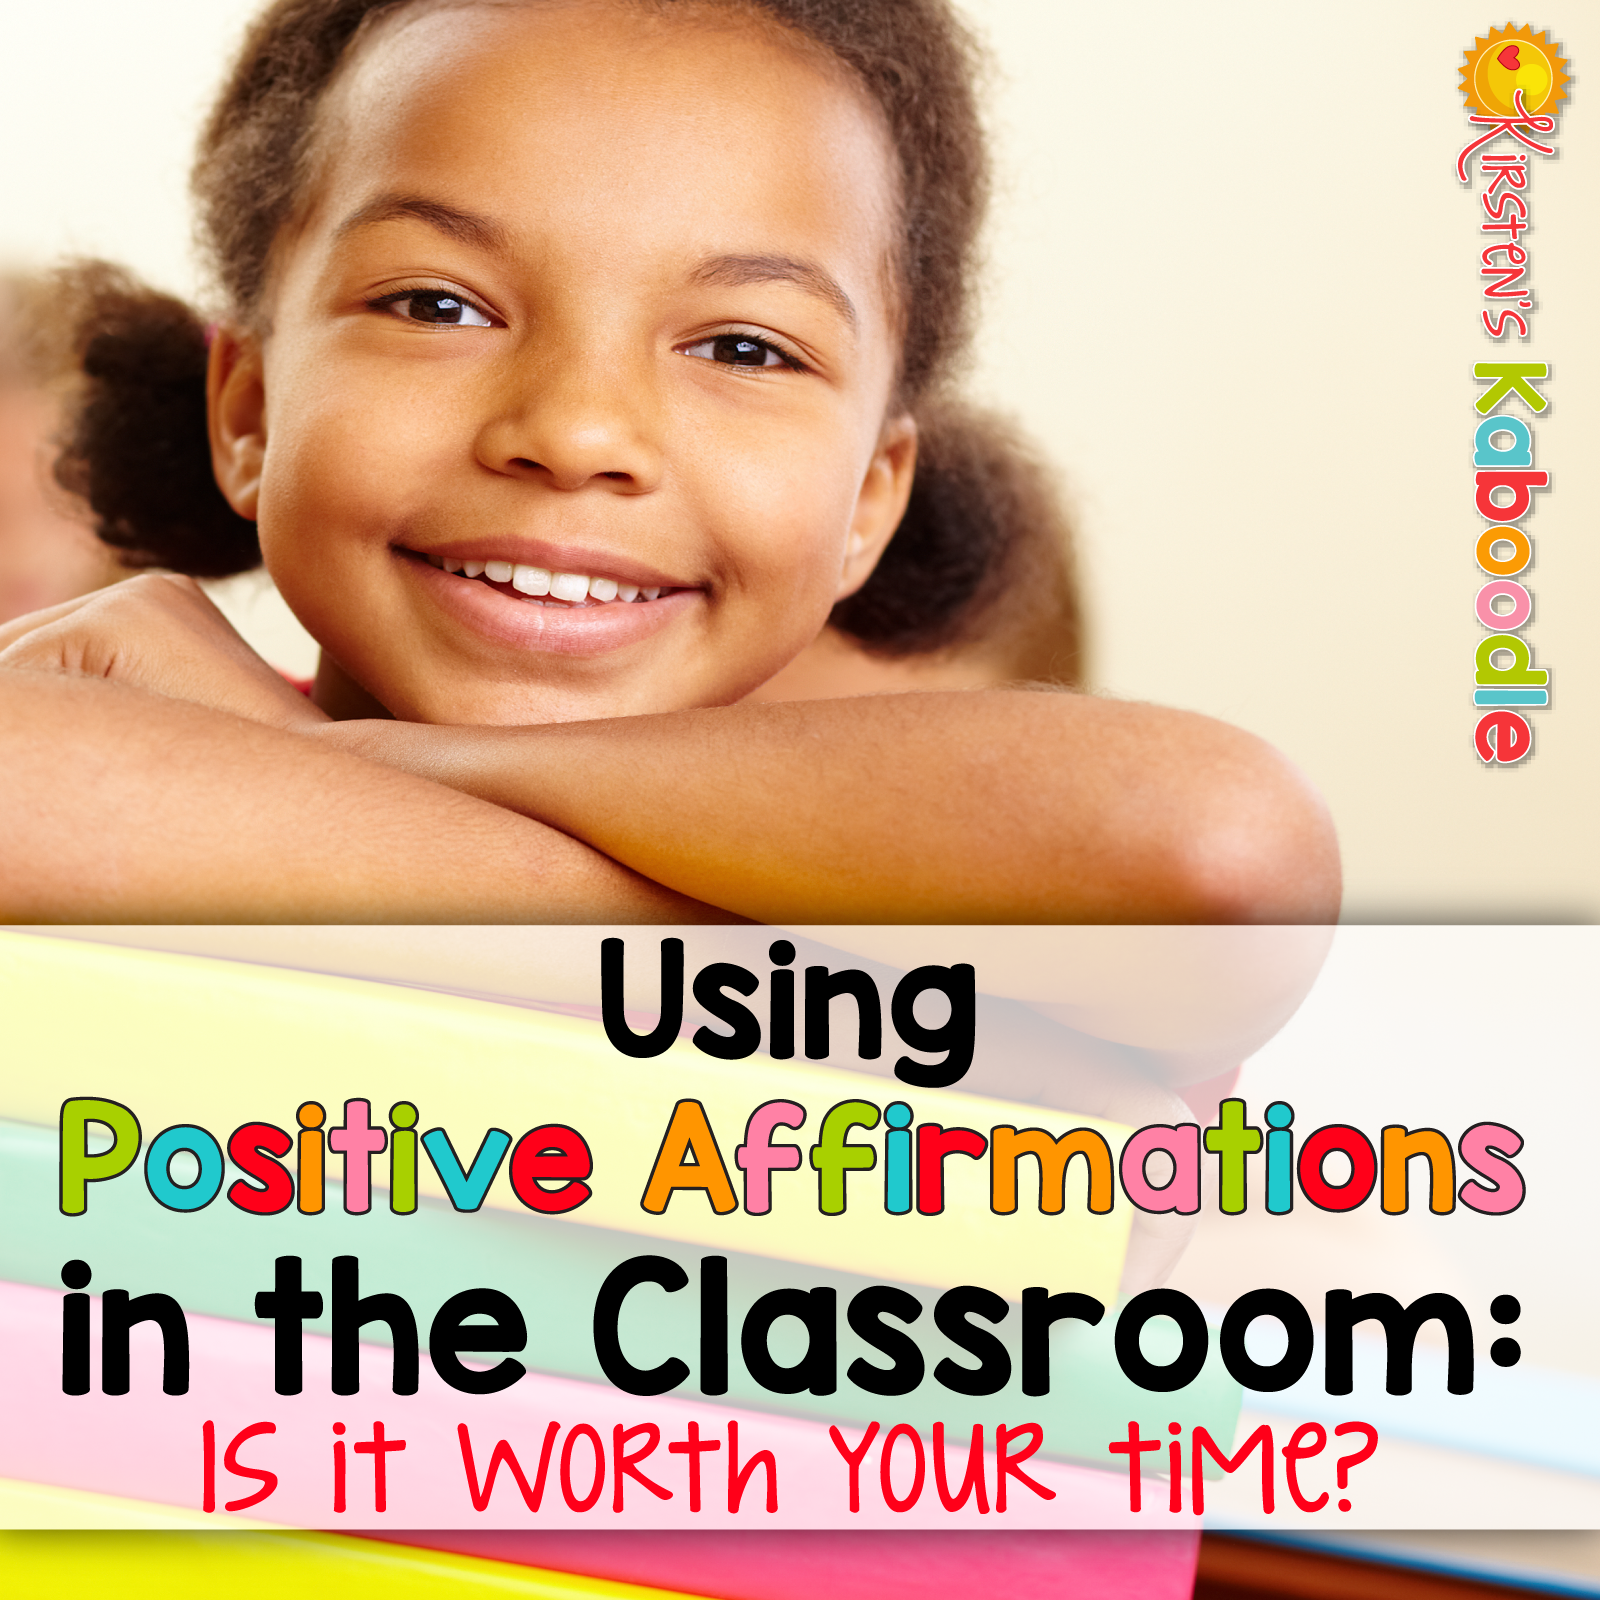 Benefits of Using Positive Affirmations in the Classroom